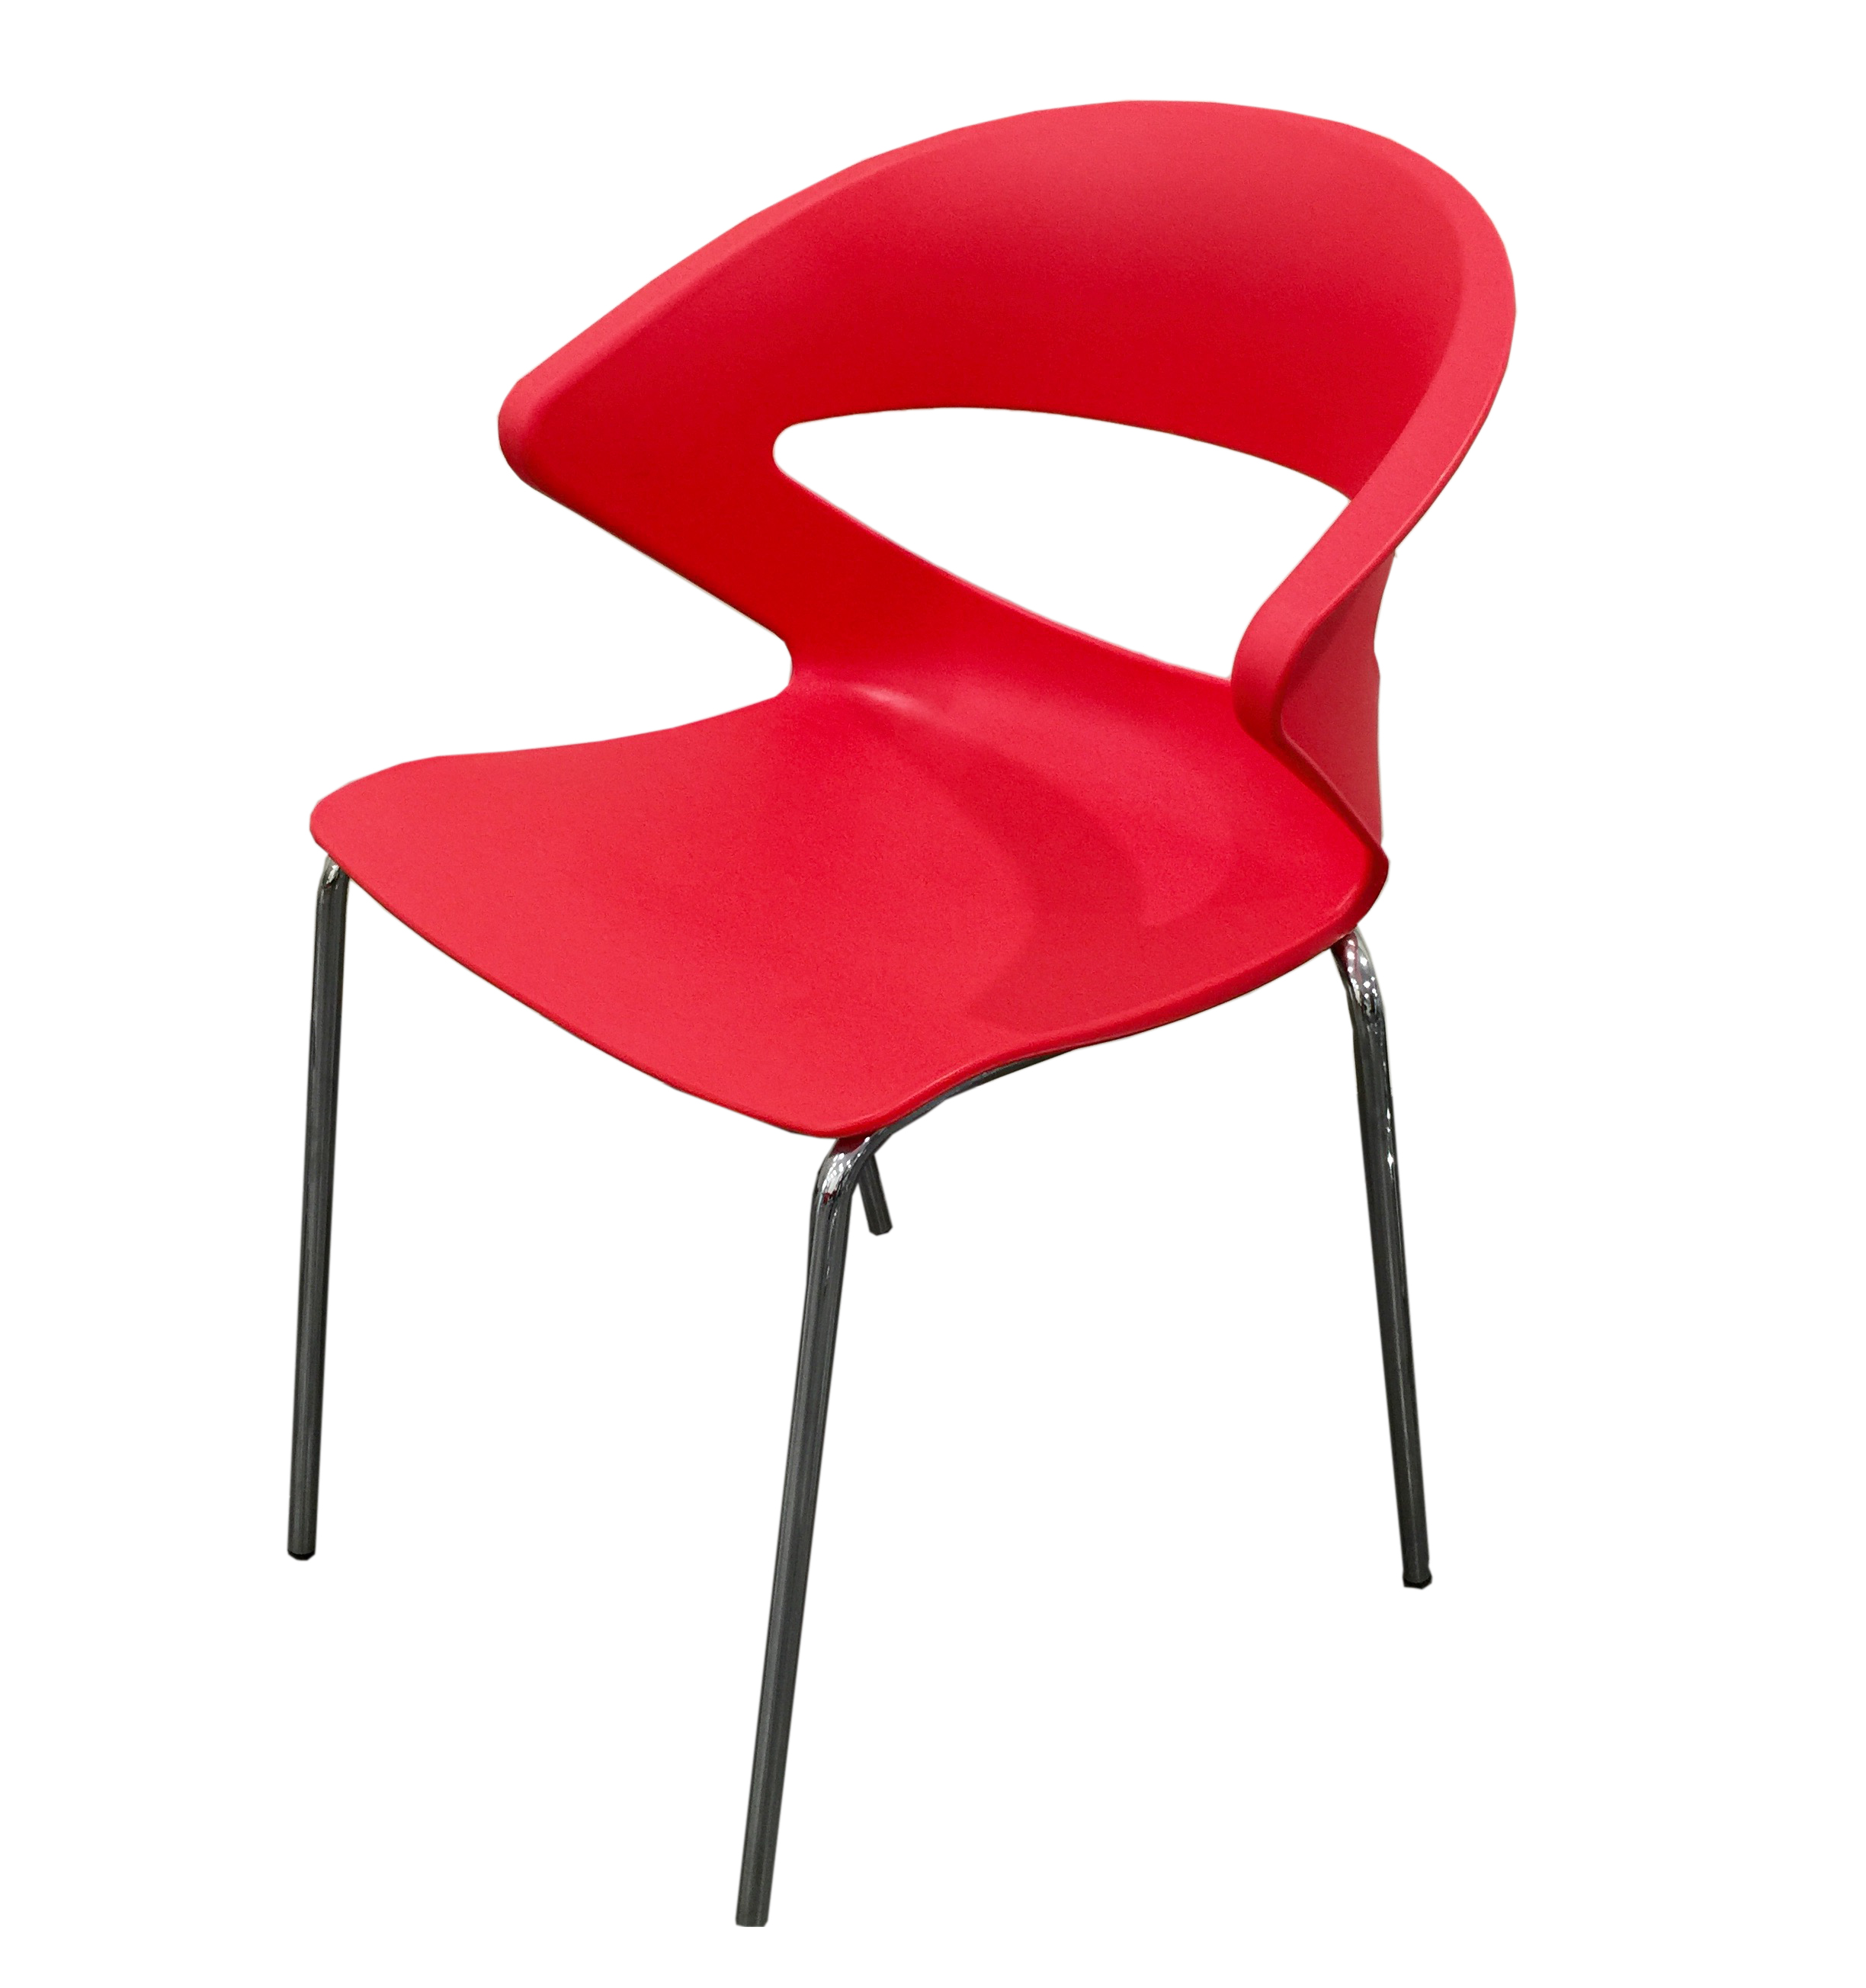 Cp Red Cc Office Chairs Online Office Chairs Price Buy Chairs